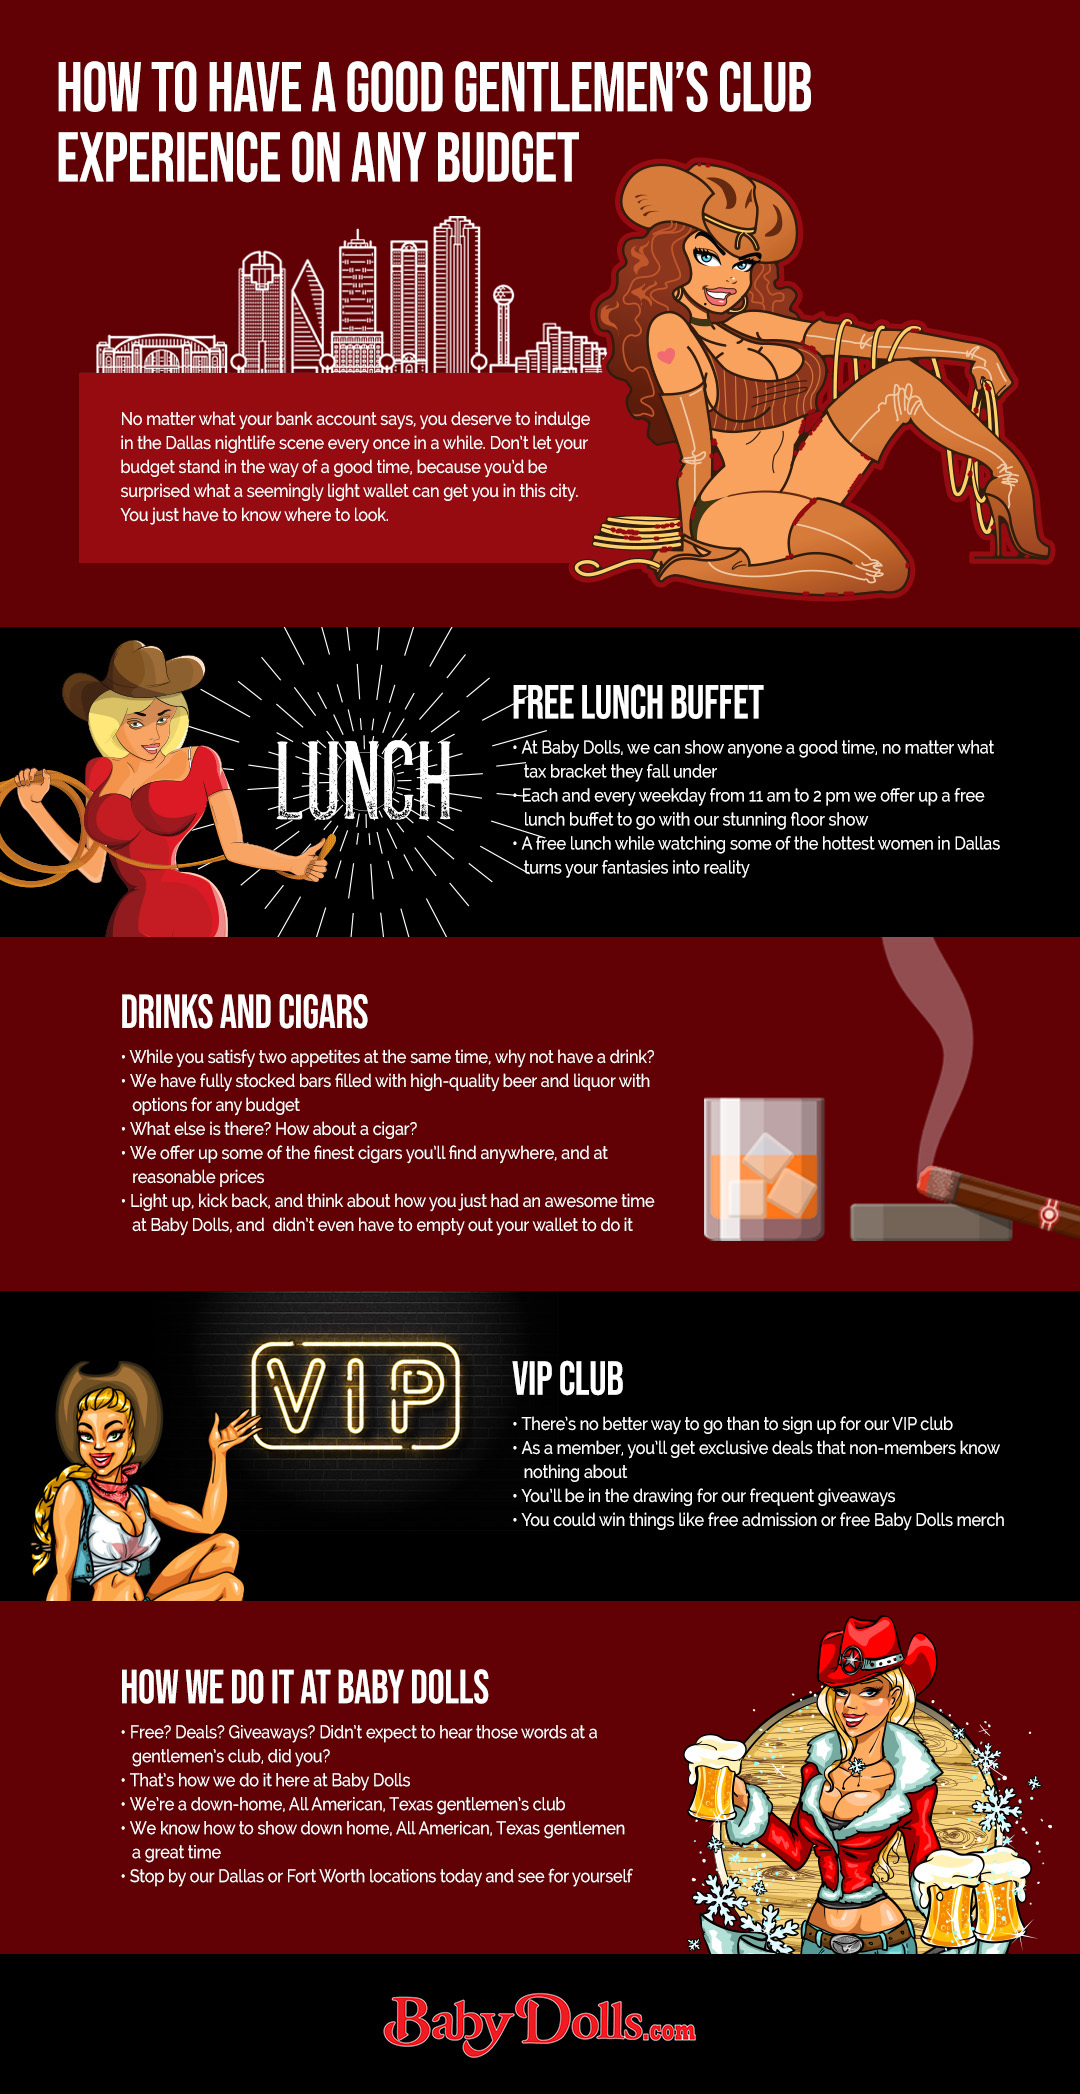 How To Have A Good Gentlemen's Club Experience On Any Budget